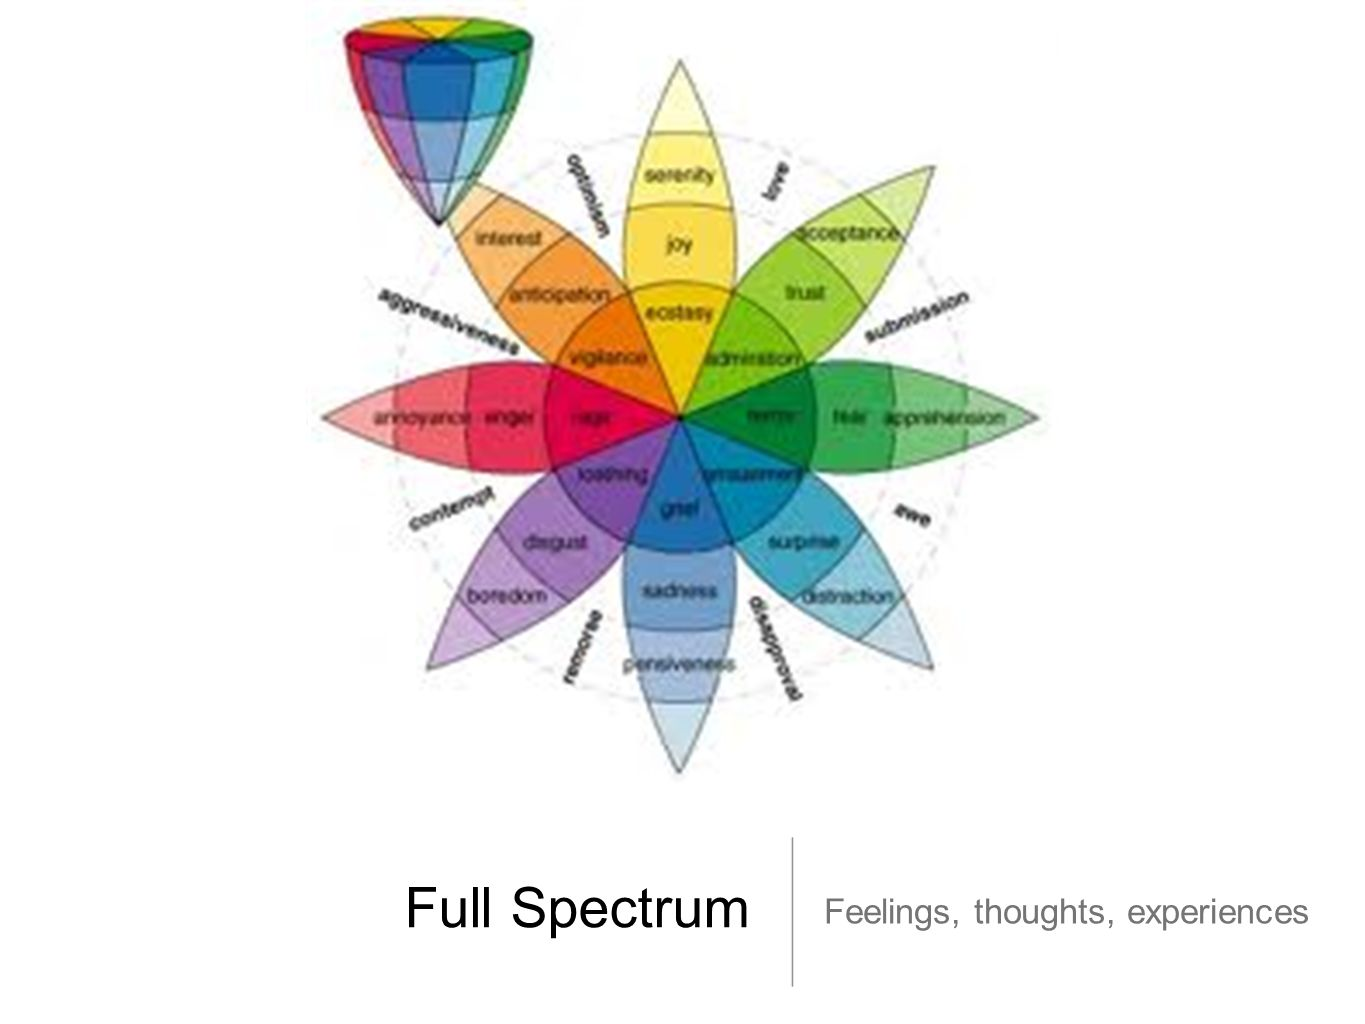 Full Spectrum Feelings, thoughts, experiences